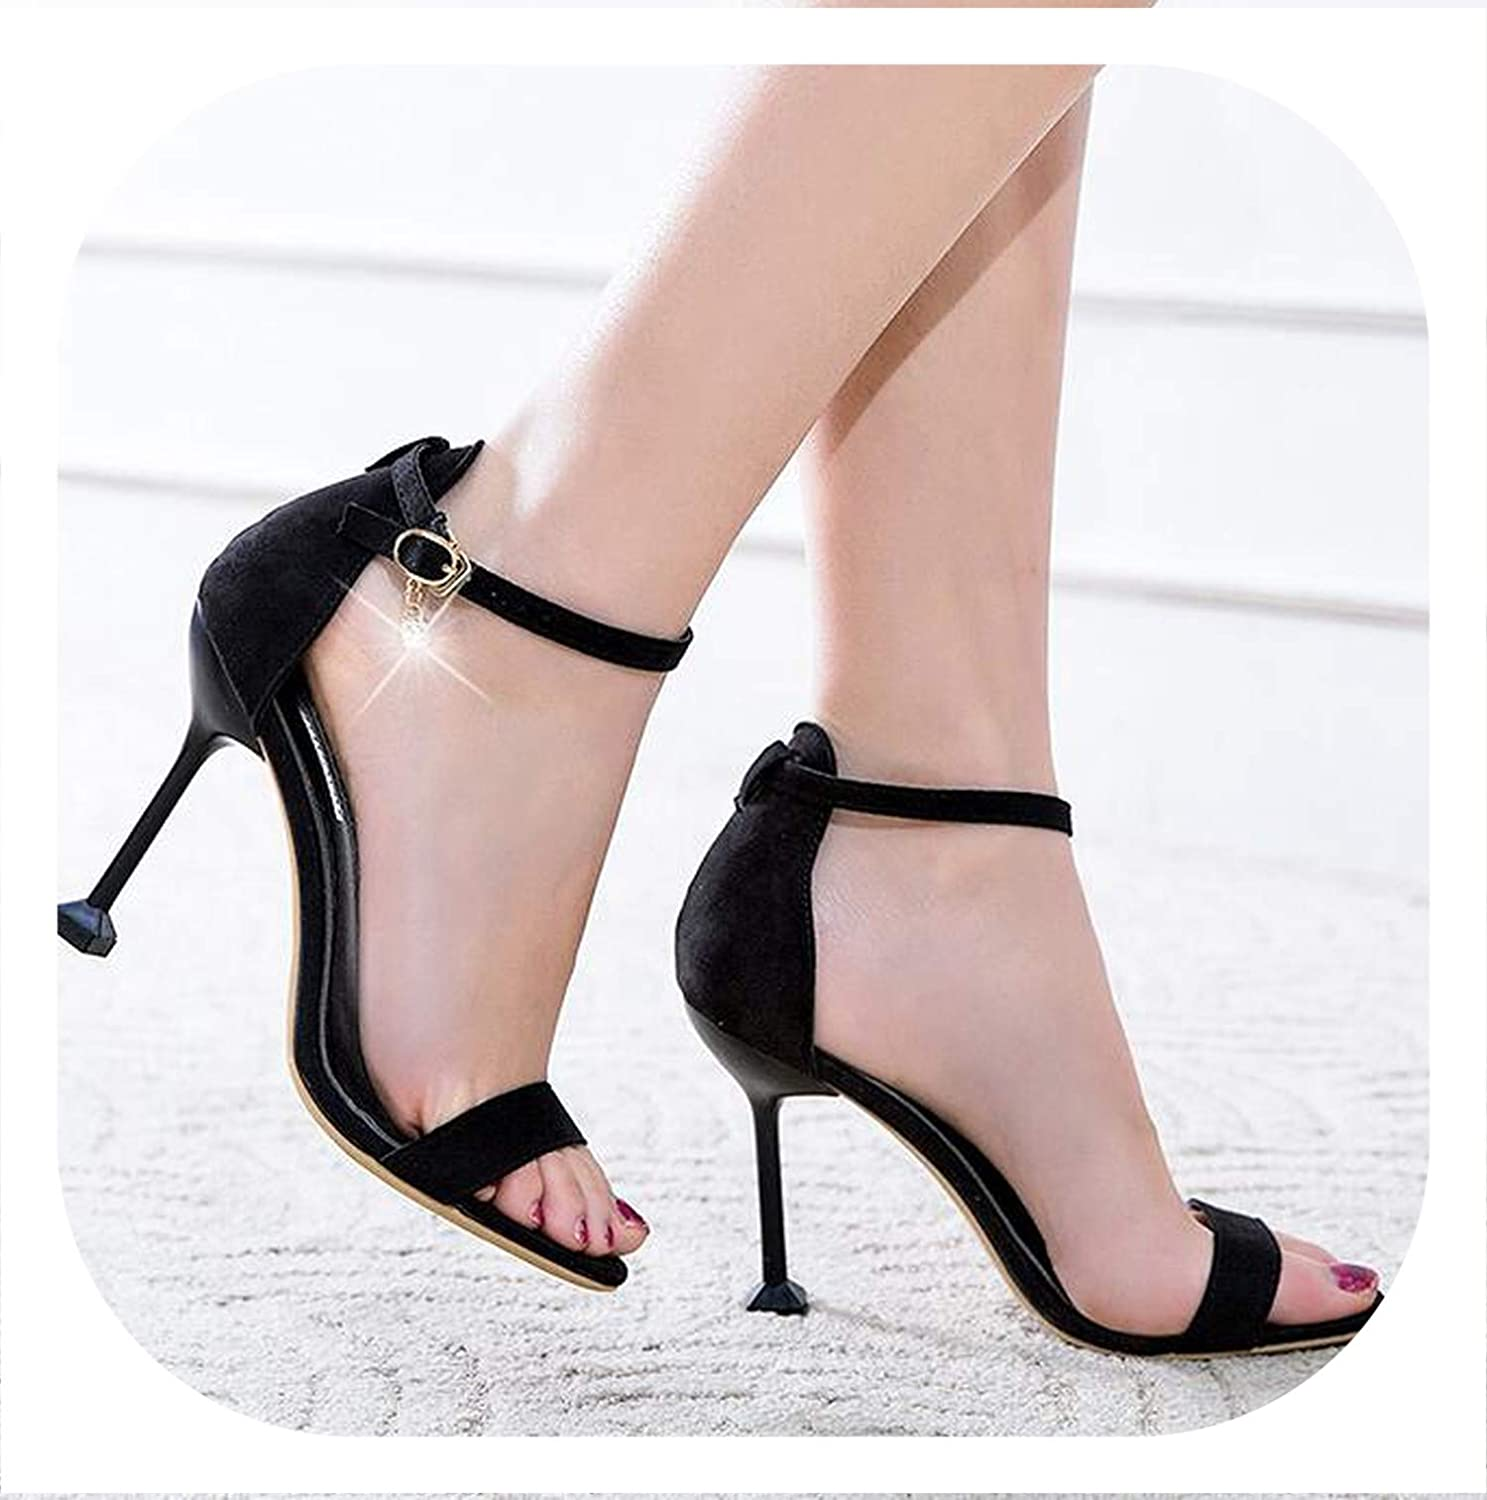 HANBINGPO Women Sandals 2019 Summer High Heels Apricot Heels Women Concise Suede Party Pump shoes